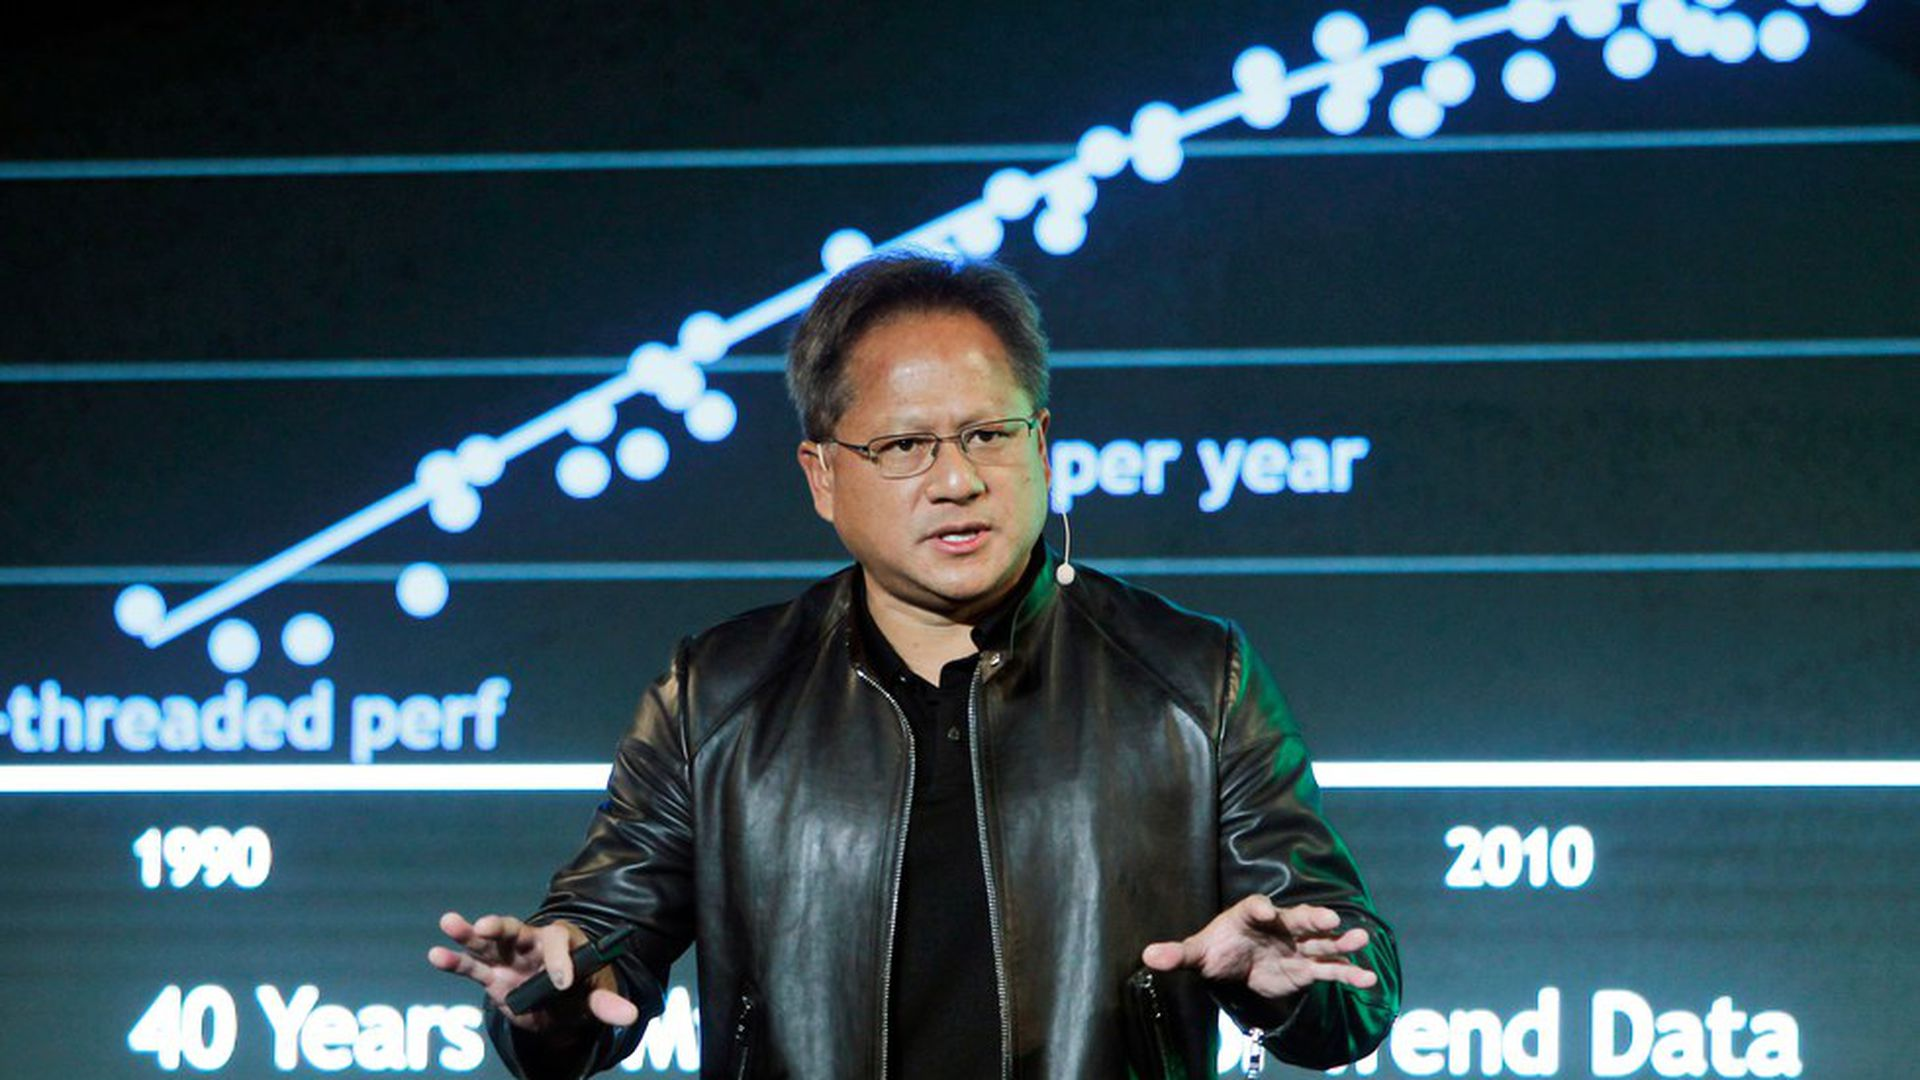 Fortune businessperson of the year: Nvidia's Huang - Axios